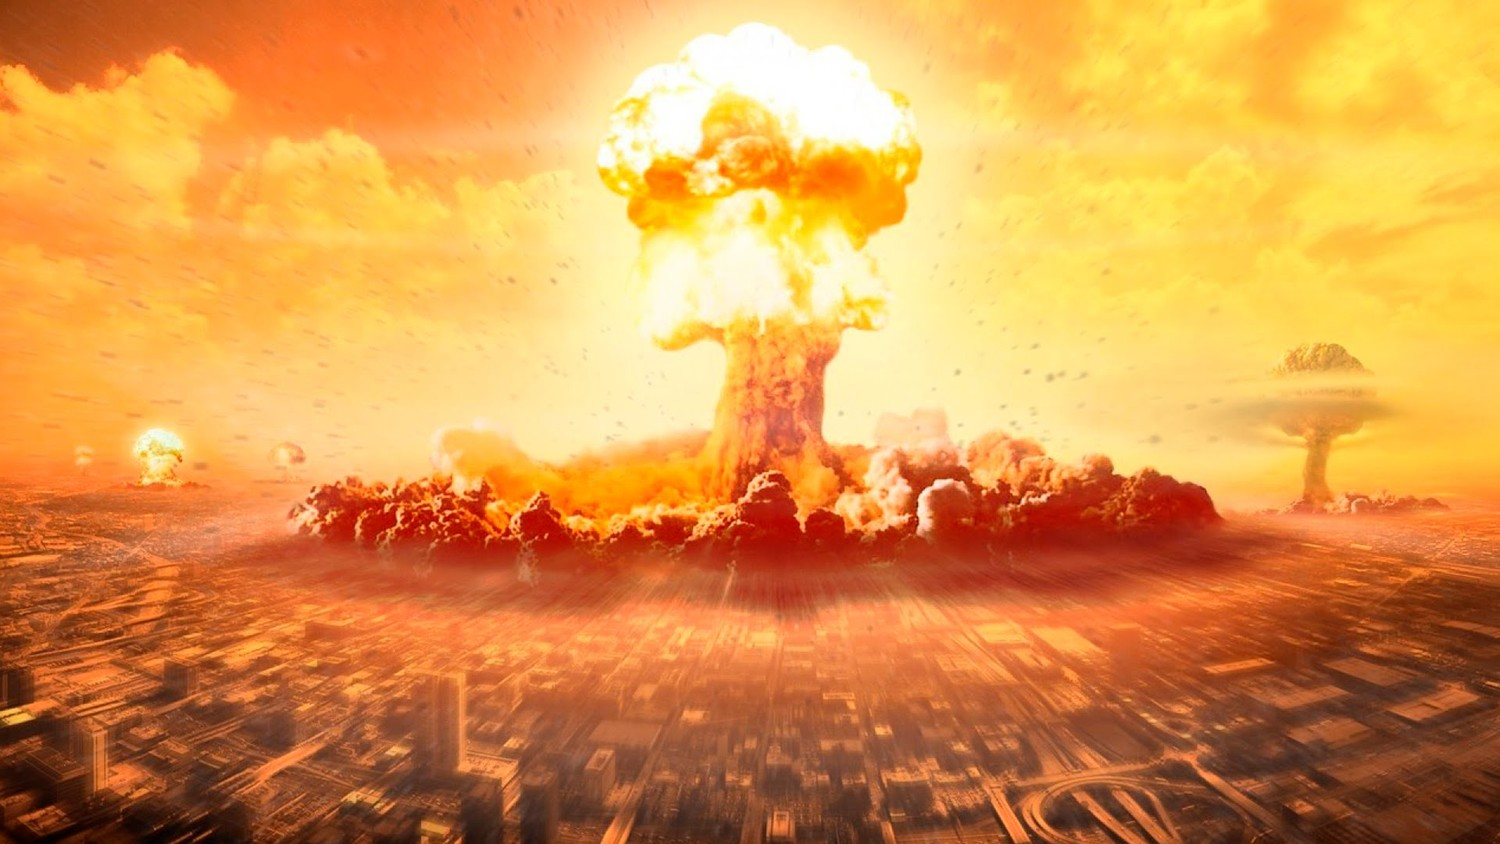 Scientists explain the benefits of nuclear tests for science